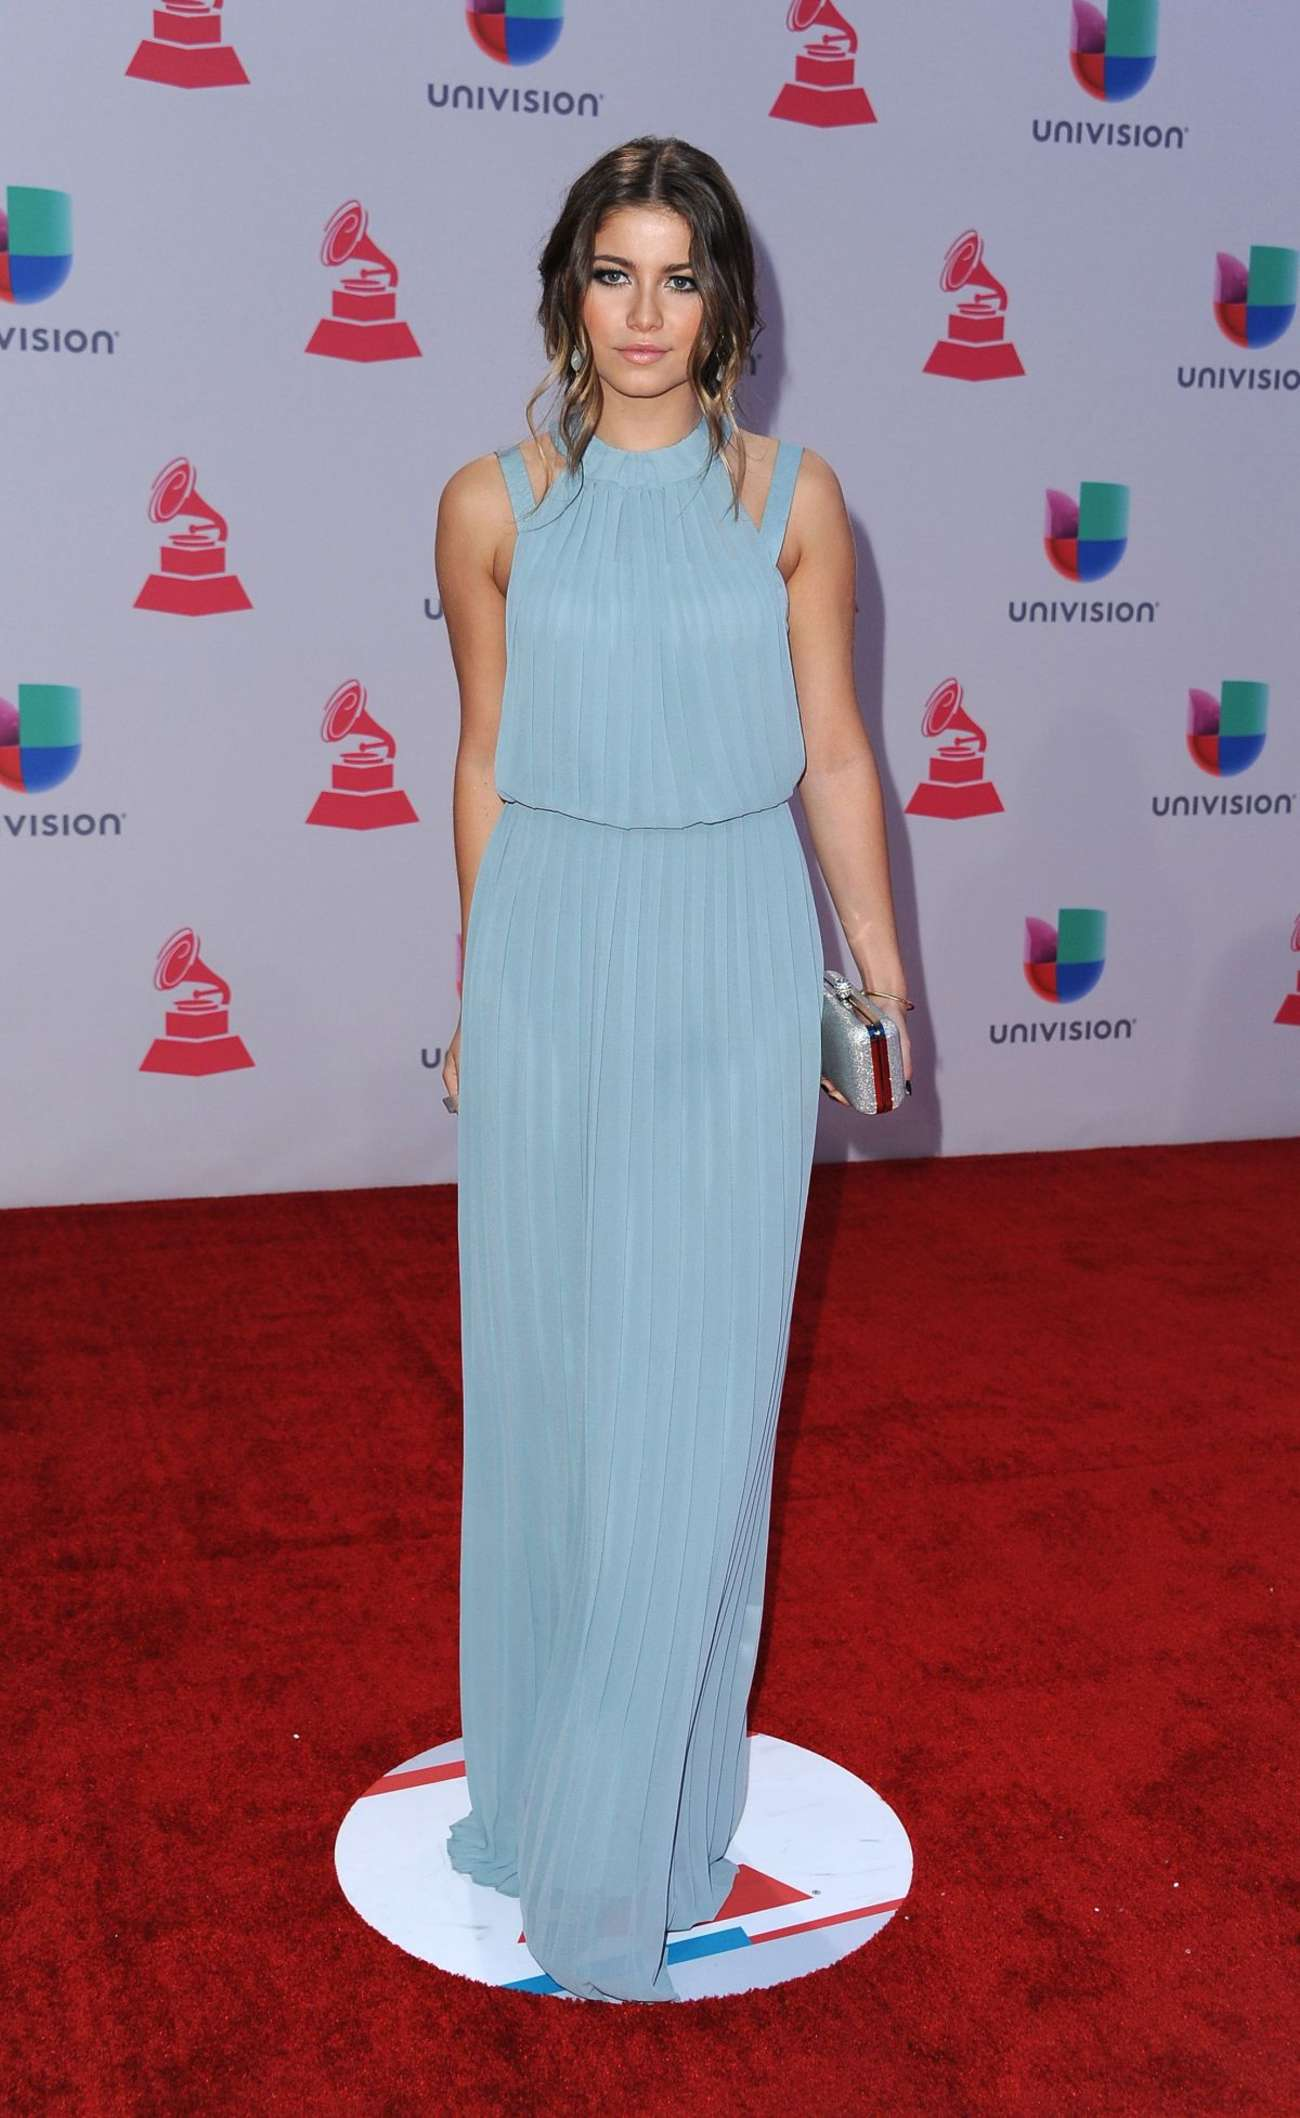 Sofia Reyes Latin Grammy Awards in Las Vegas